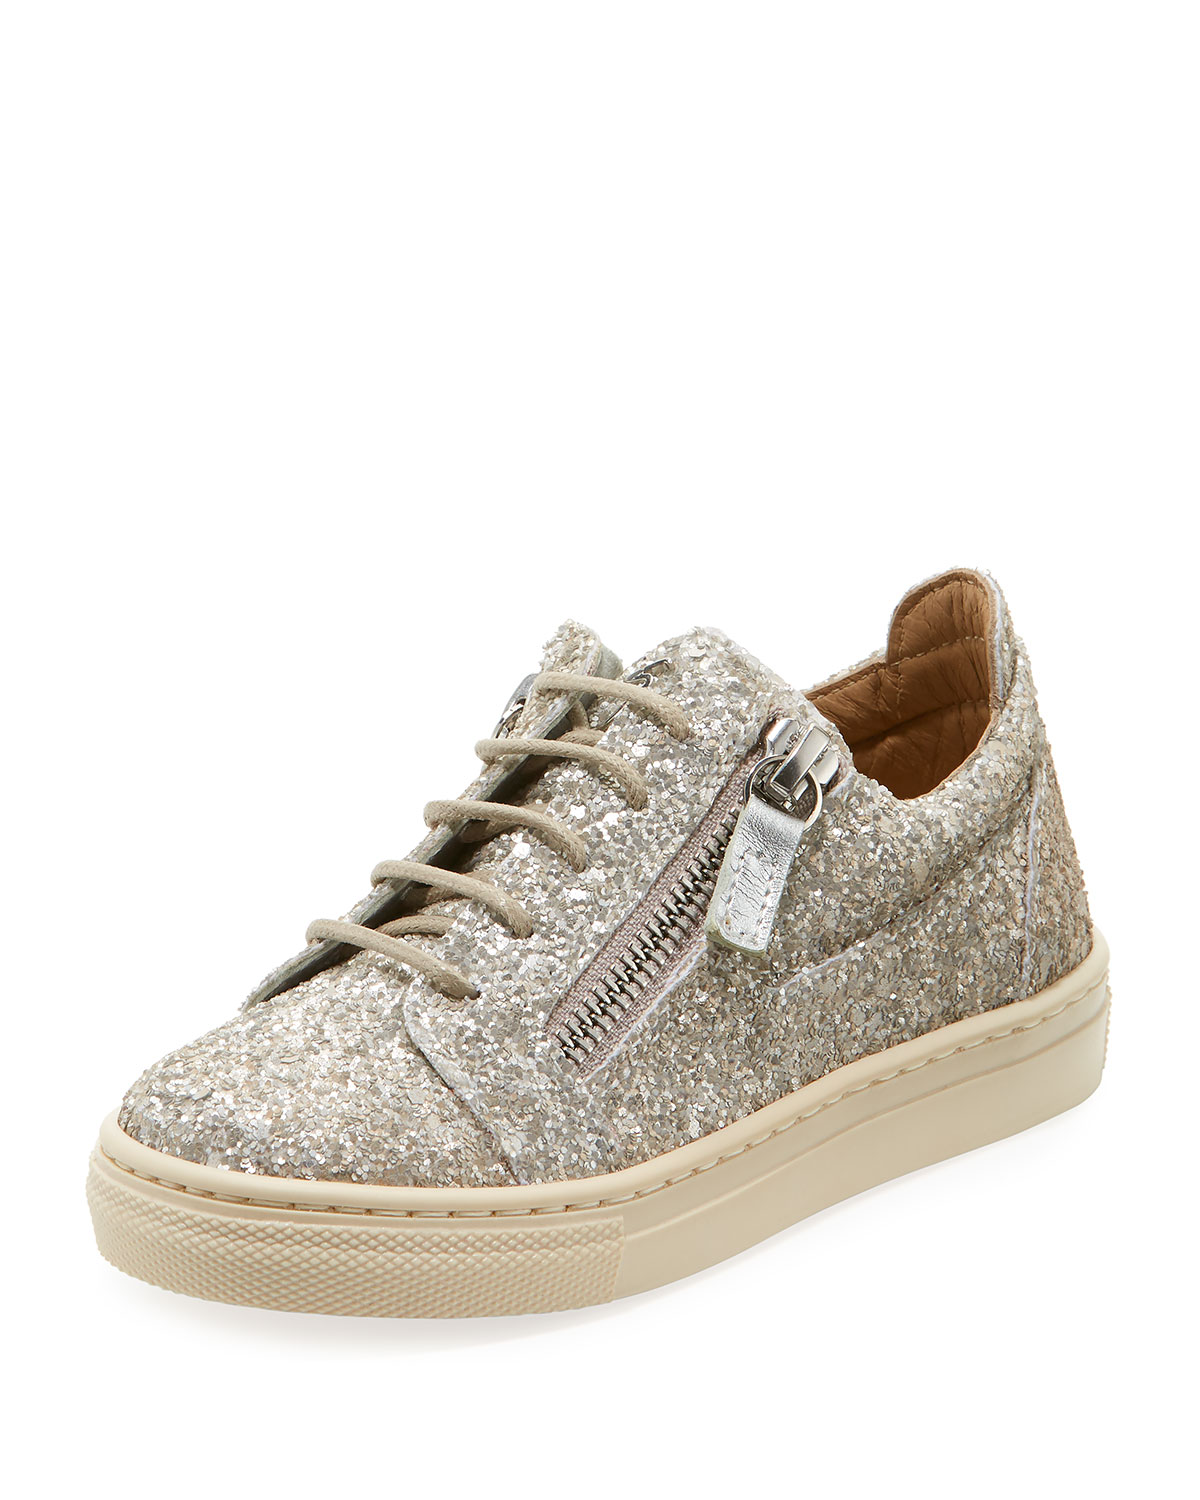 Glittered Low-Top Double Zip Sneakers, Toddler/Kid in Champagne Silver